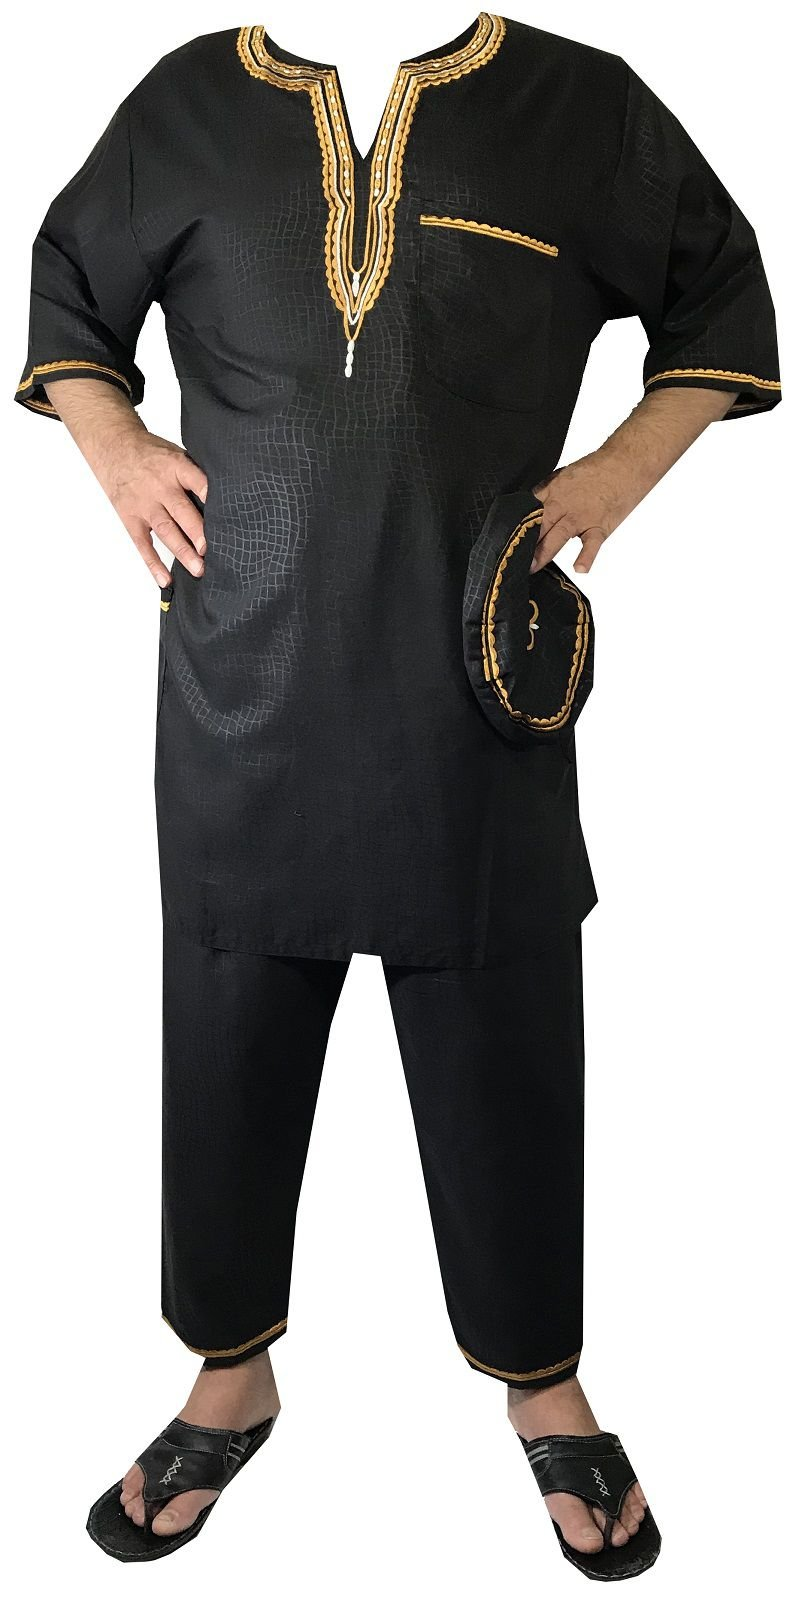 DecoraApparel African Traditional Men Suit Ethnic Clothing Brocade Pant Set Plus Size (Black Gold)